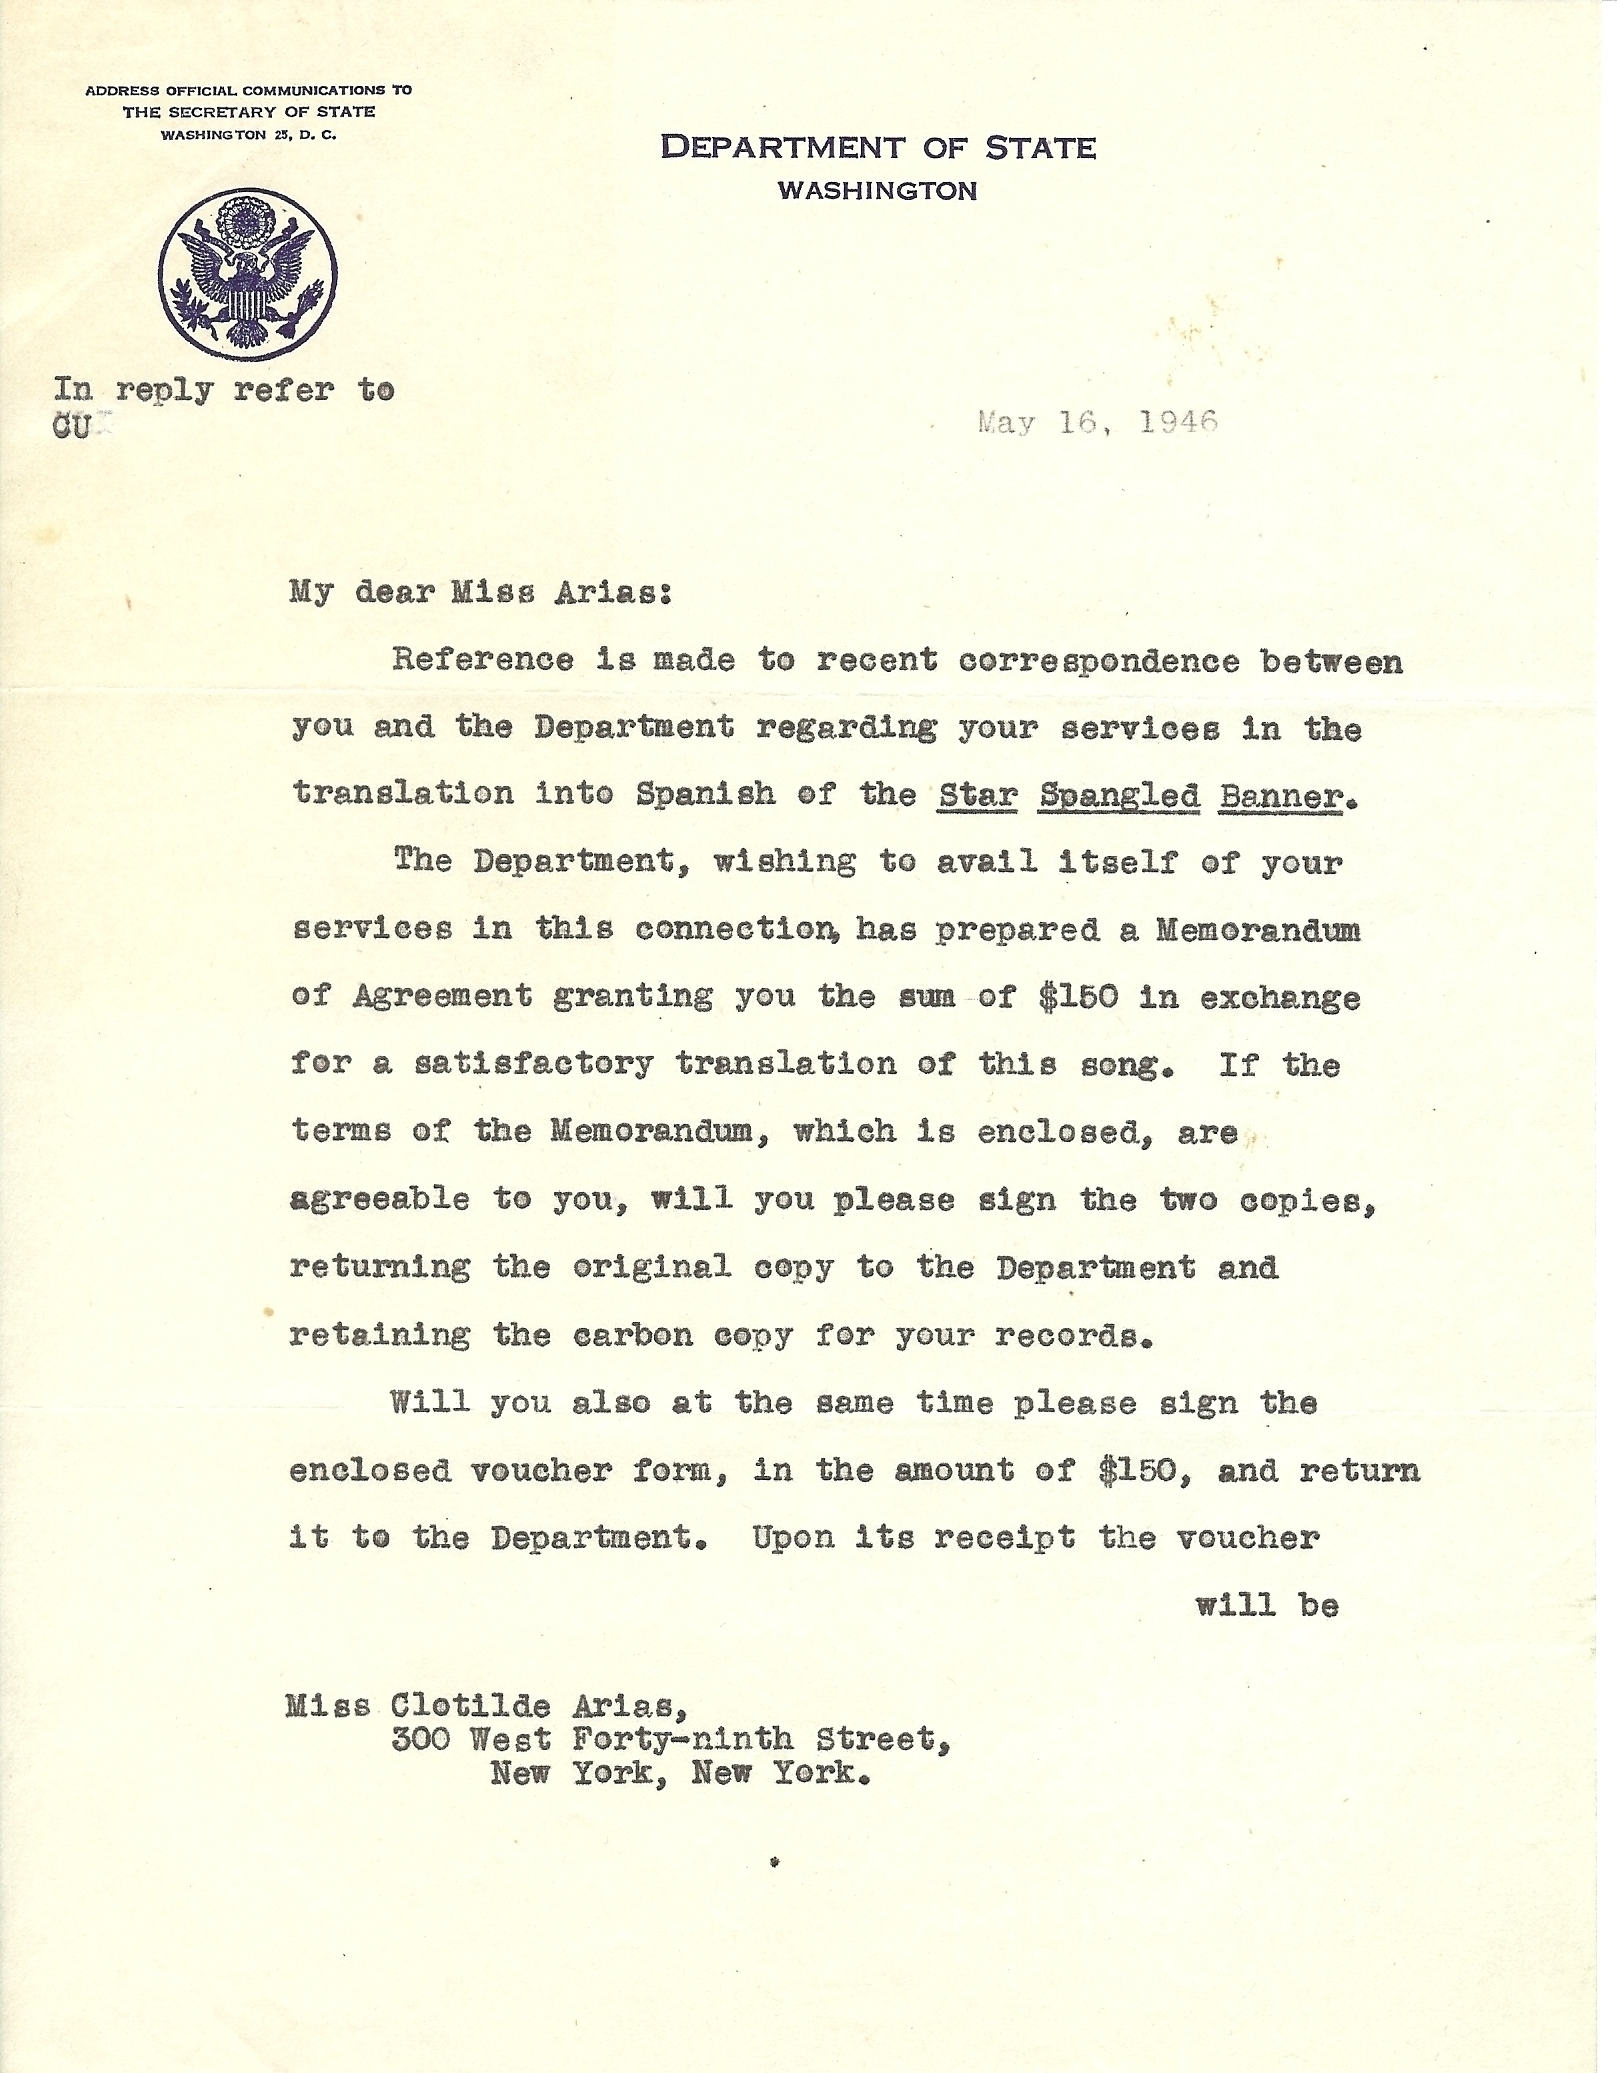 A 1946 State Department memo to Clotilde Arias, setting the terms of payment for her translation.